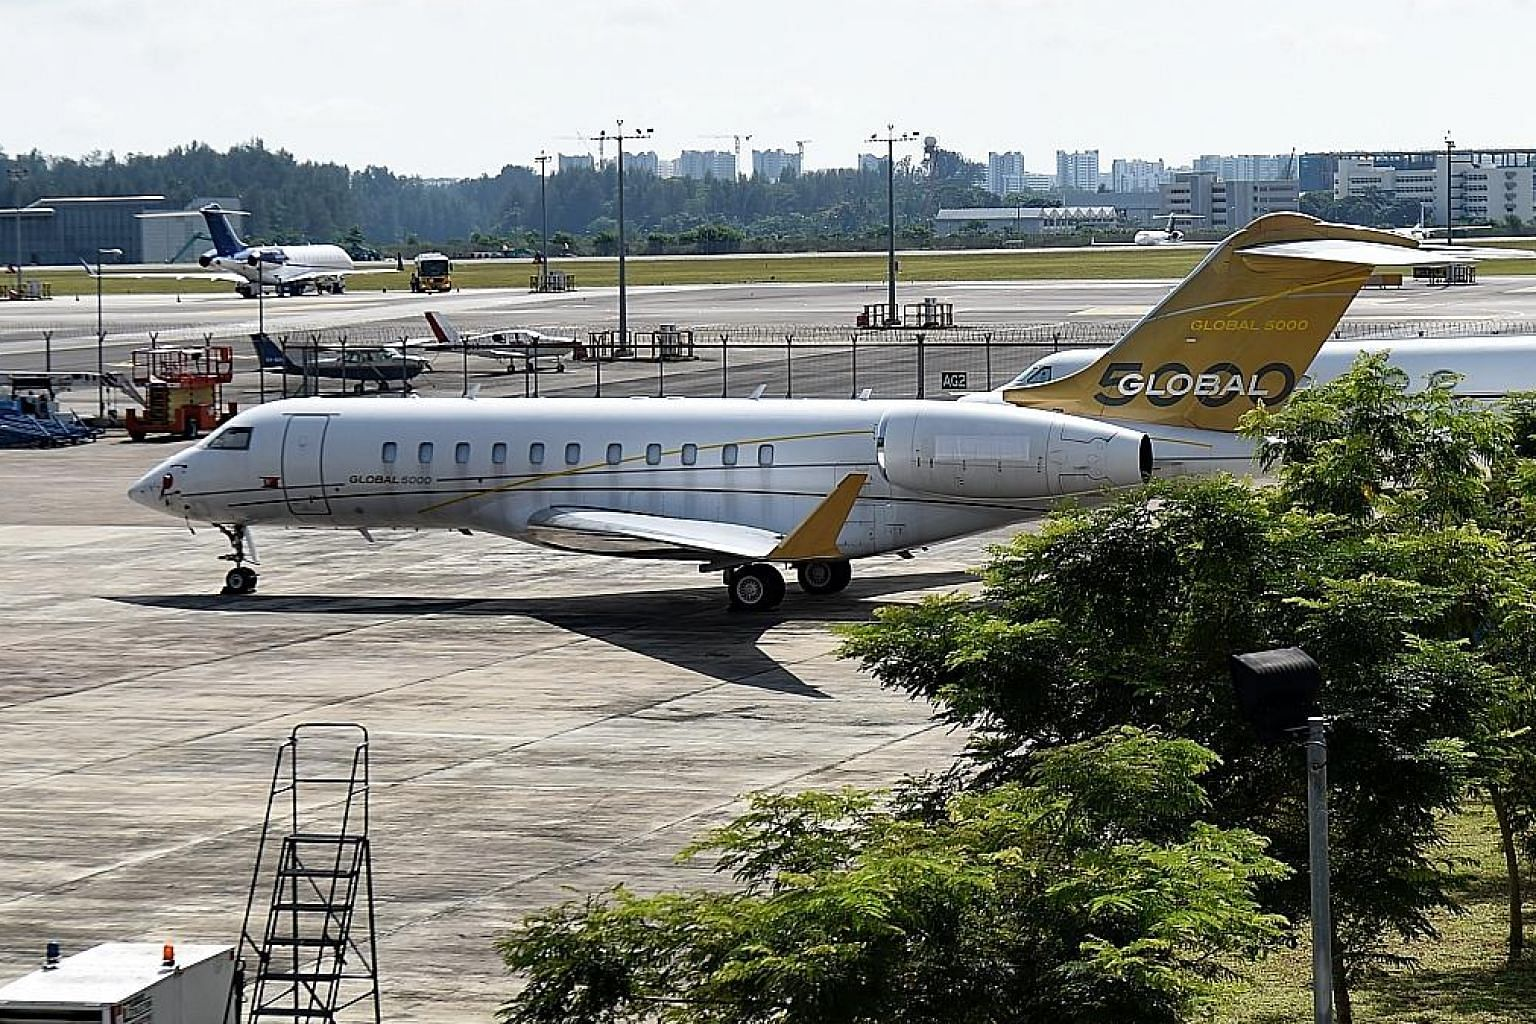 A photo taken on Feb 6, 2017 of a Bombardier Global 5000 plane, without a body number, parked on the tarmac of Seletar Airport in Singapore.